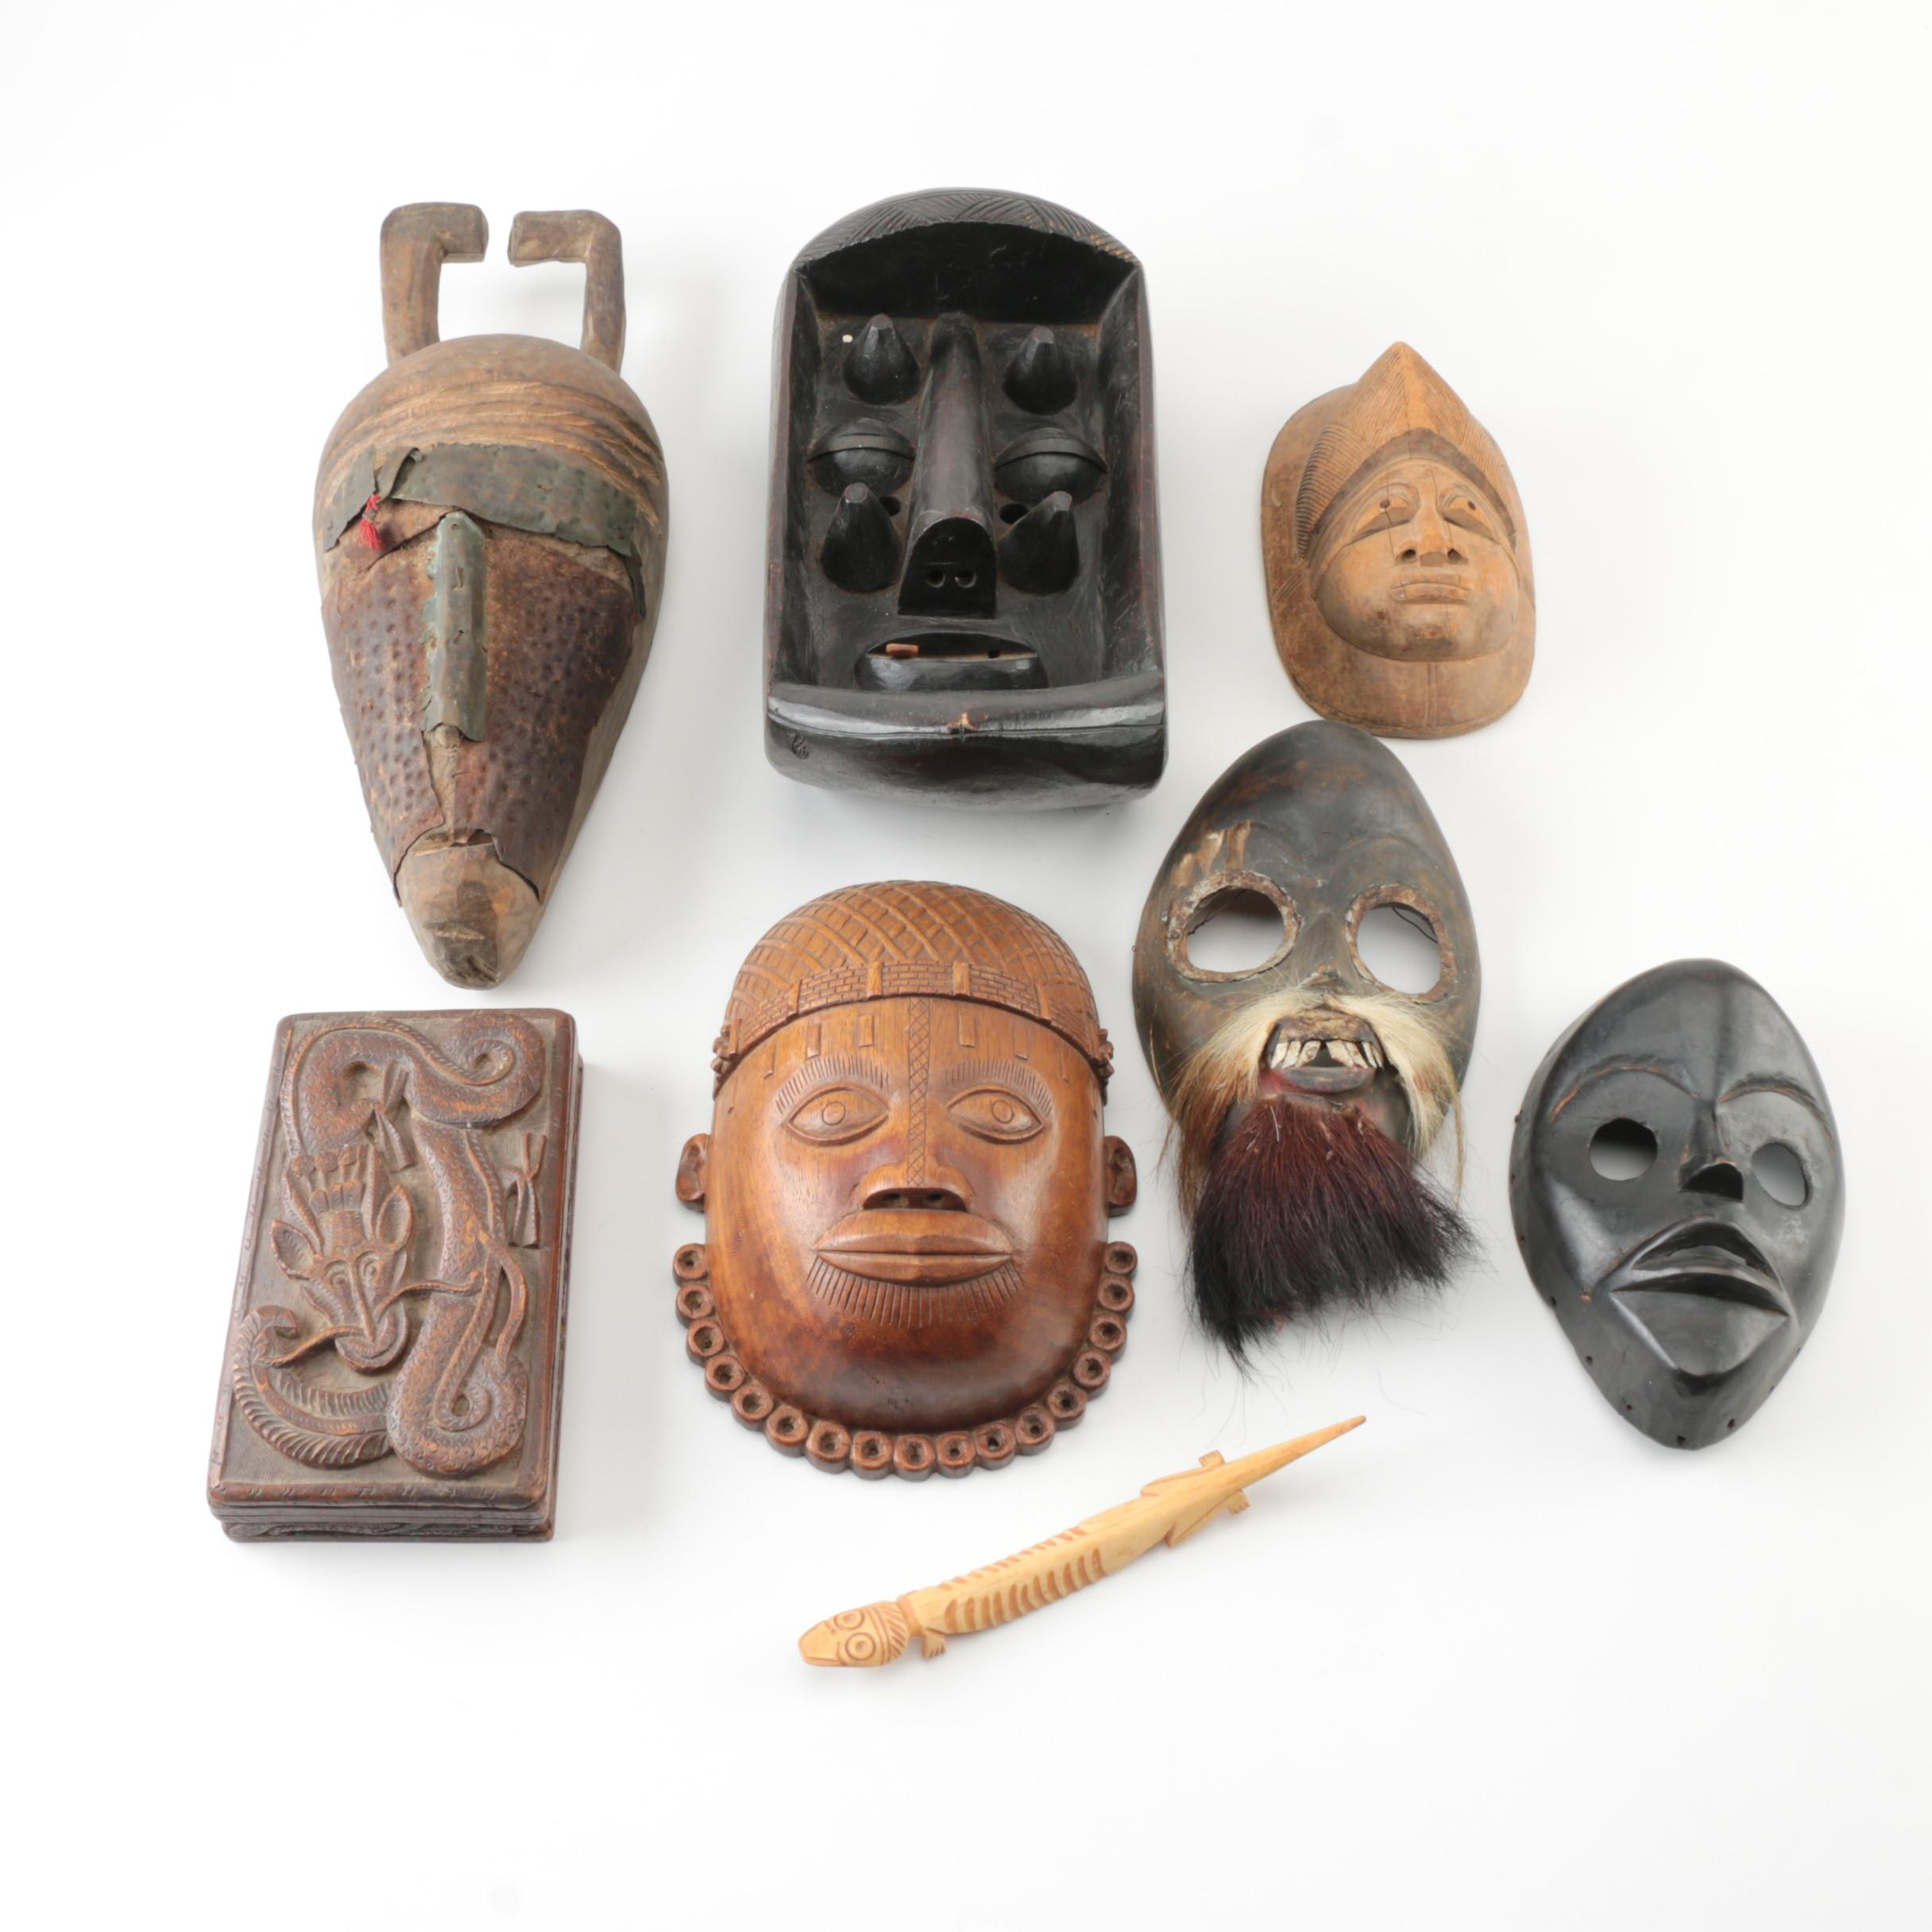 Collection of Ethnographic Art Including West African Masks